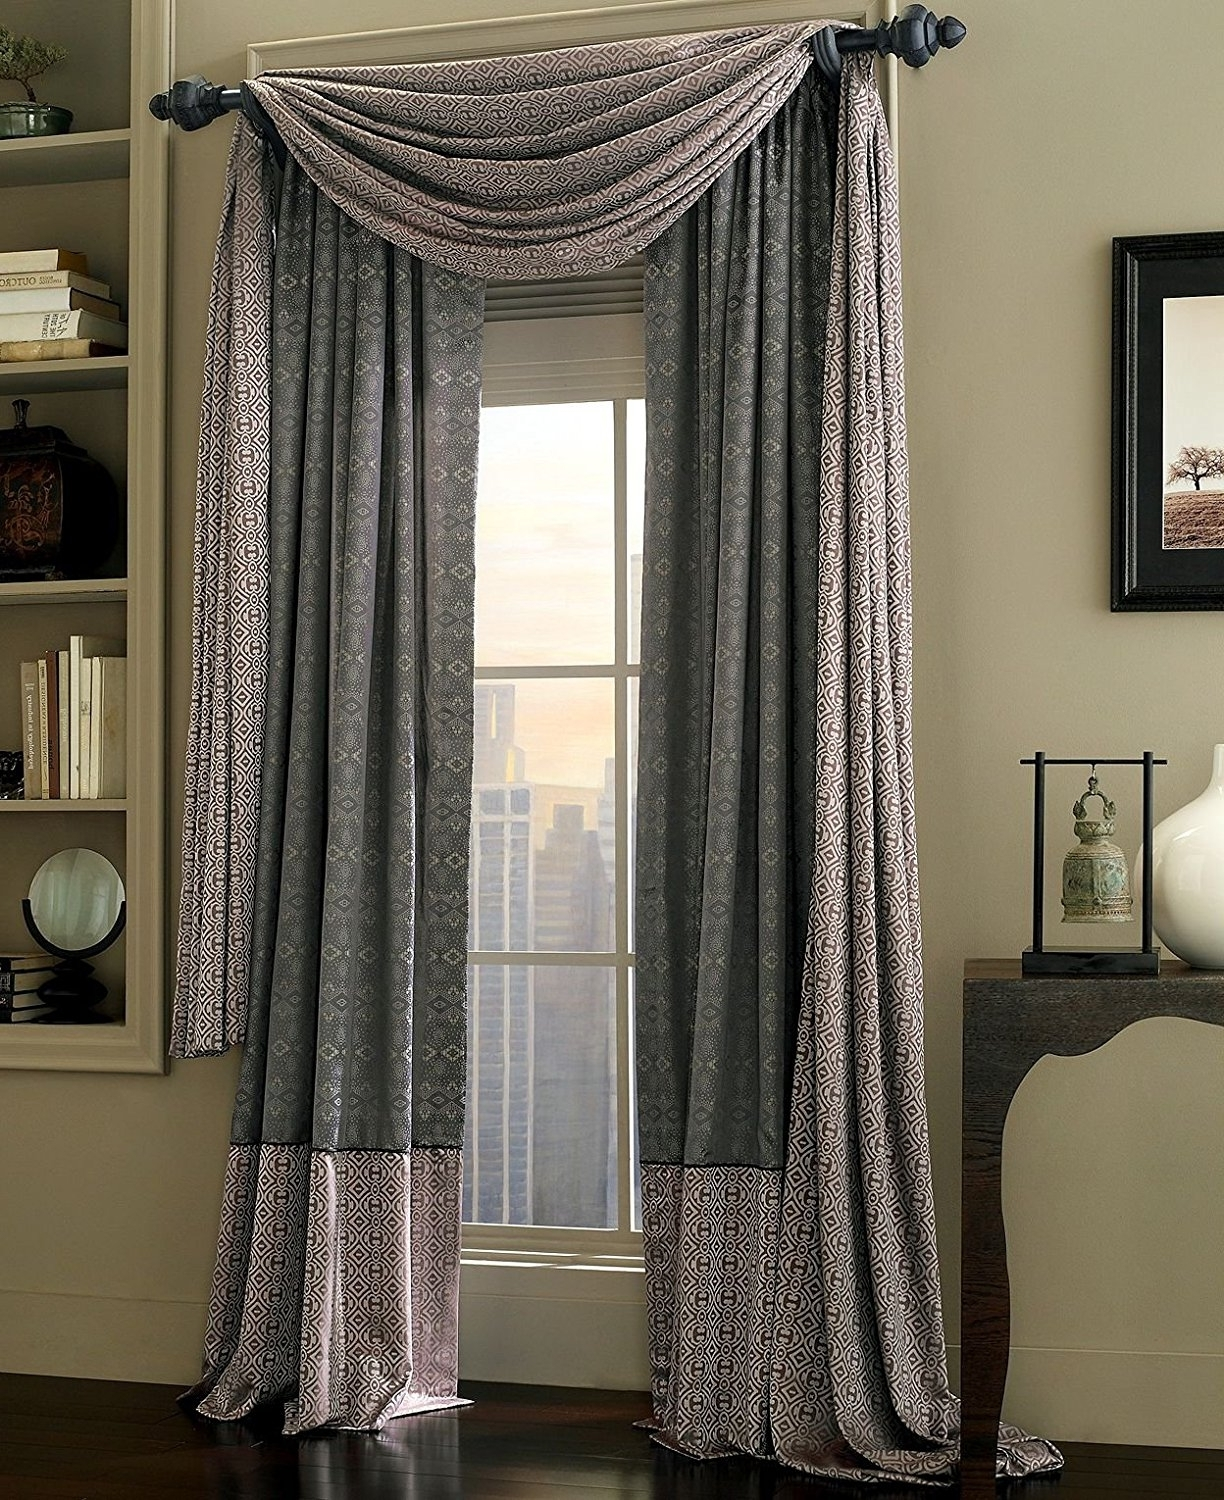 Decor: Gray Macys Curtains With Wall Art And Wall Shelves Plus Throughout Popular Macys Wall Art (Gallery 12 of 15)